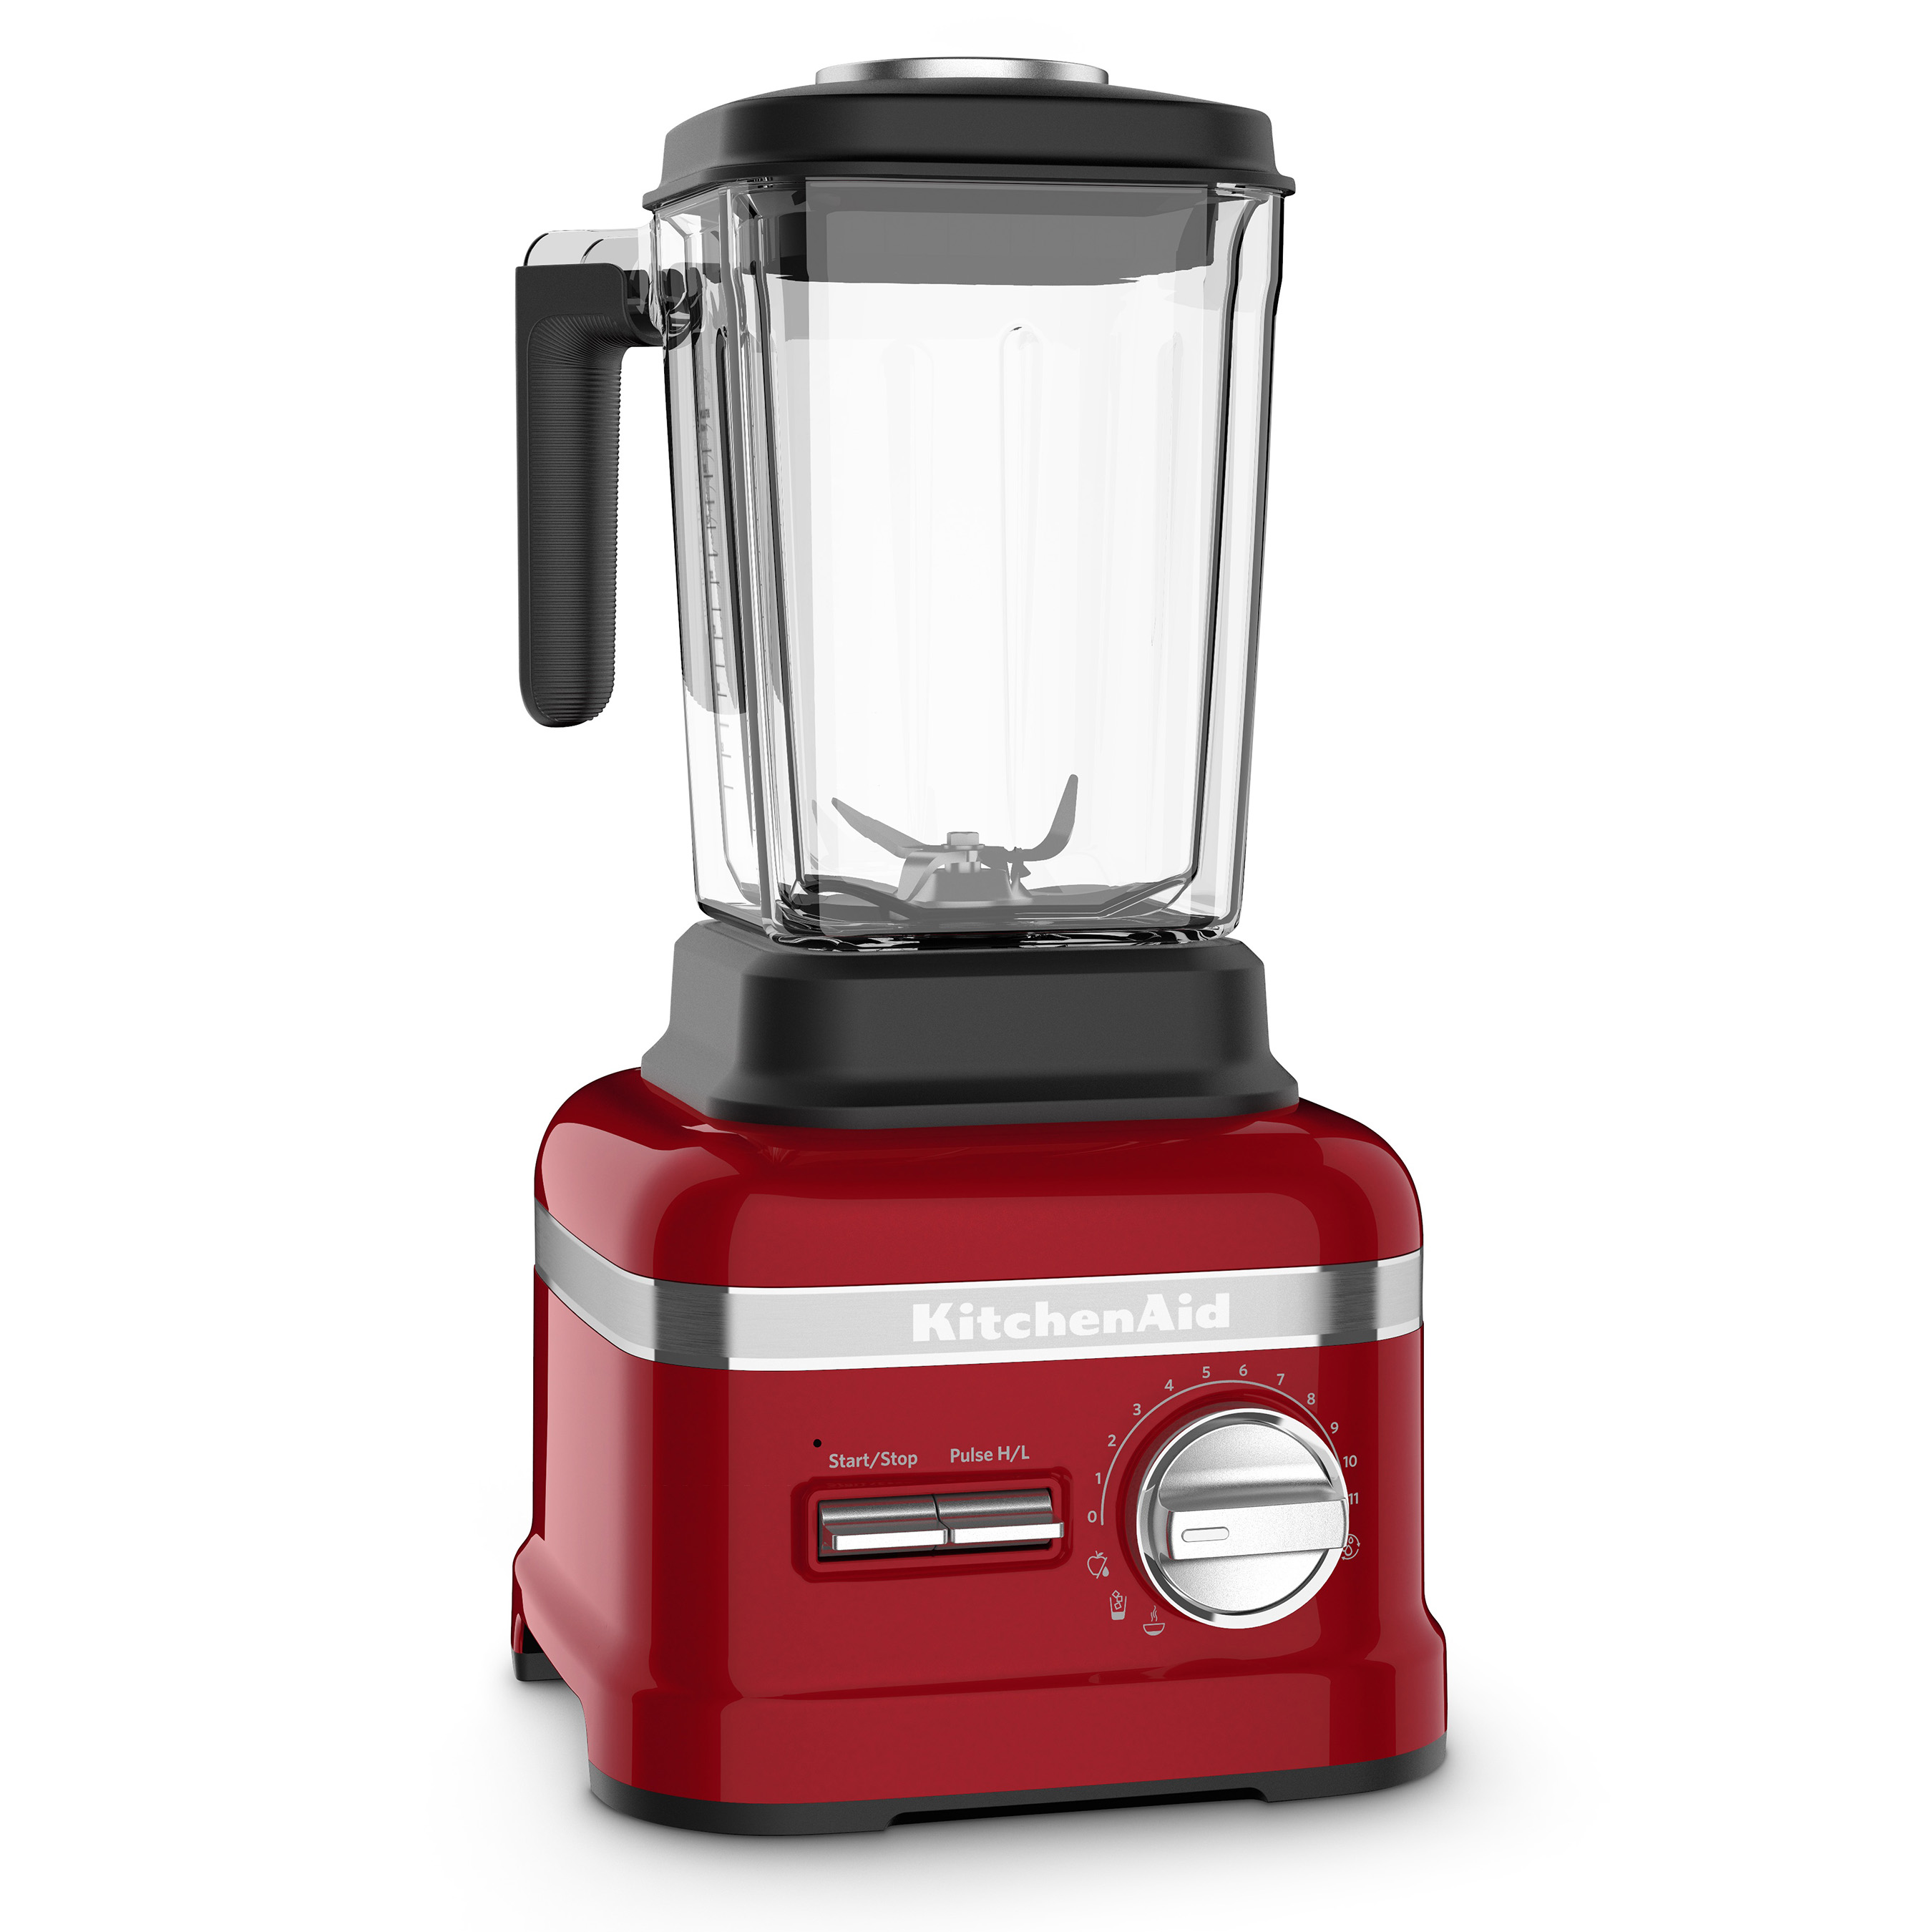 The Pro Line® Series Blender's heavy-duty motor and advanced motor control system easily blends everything from frozen fruits and nuts to fibrous, nutrient-dense vegetables.